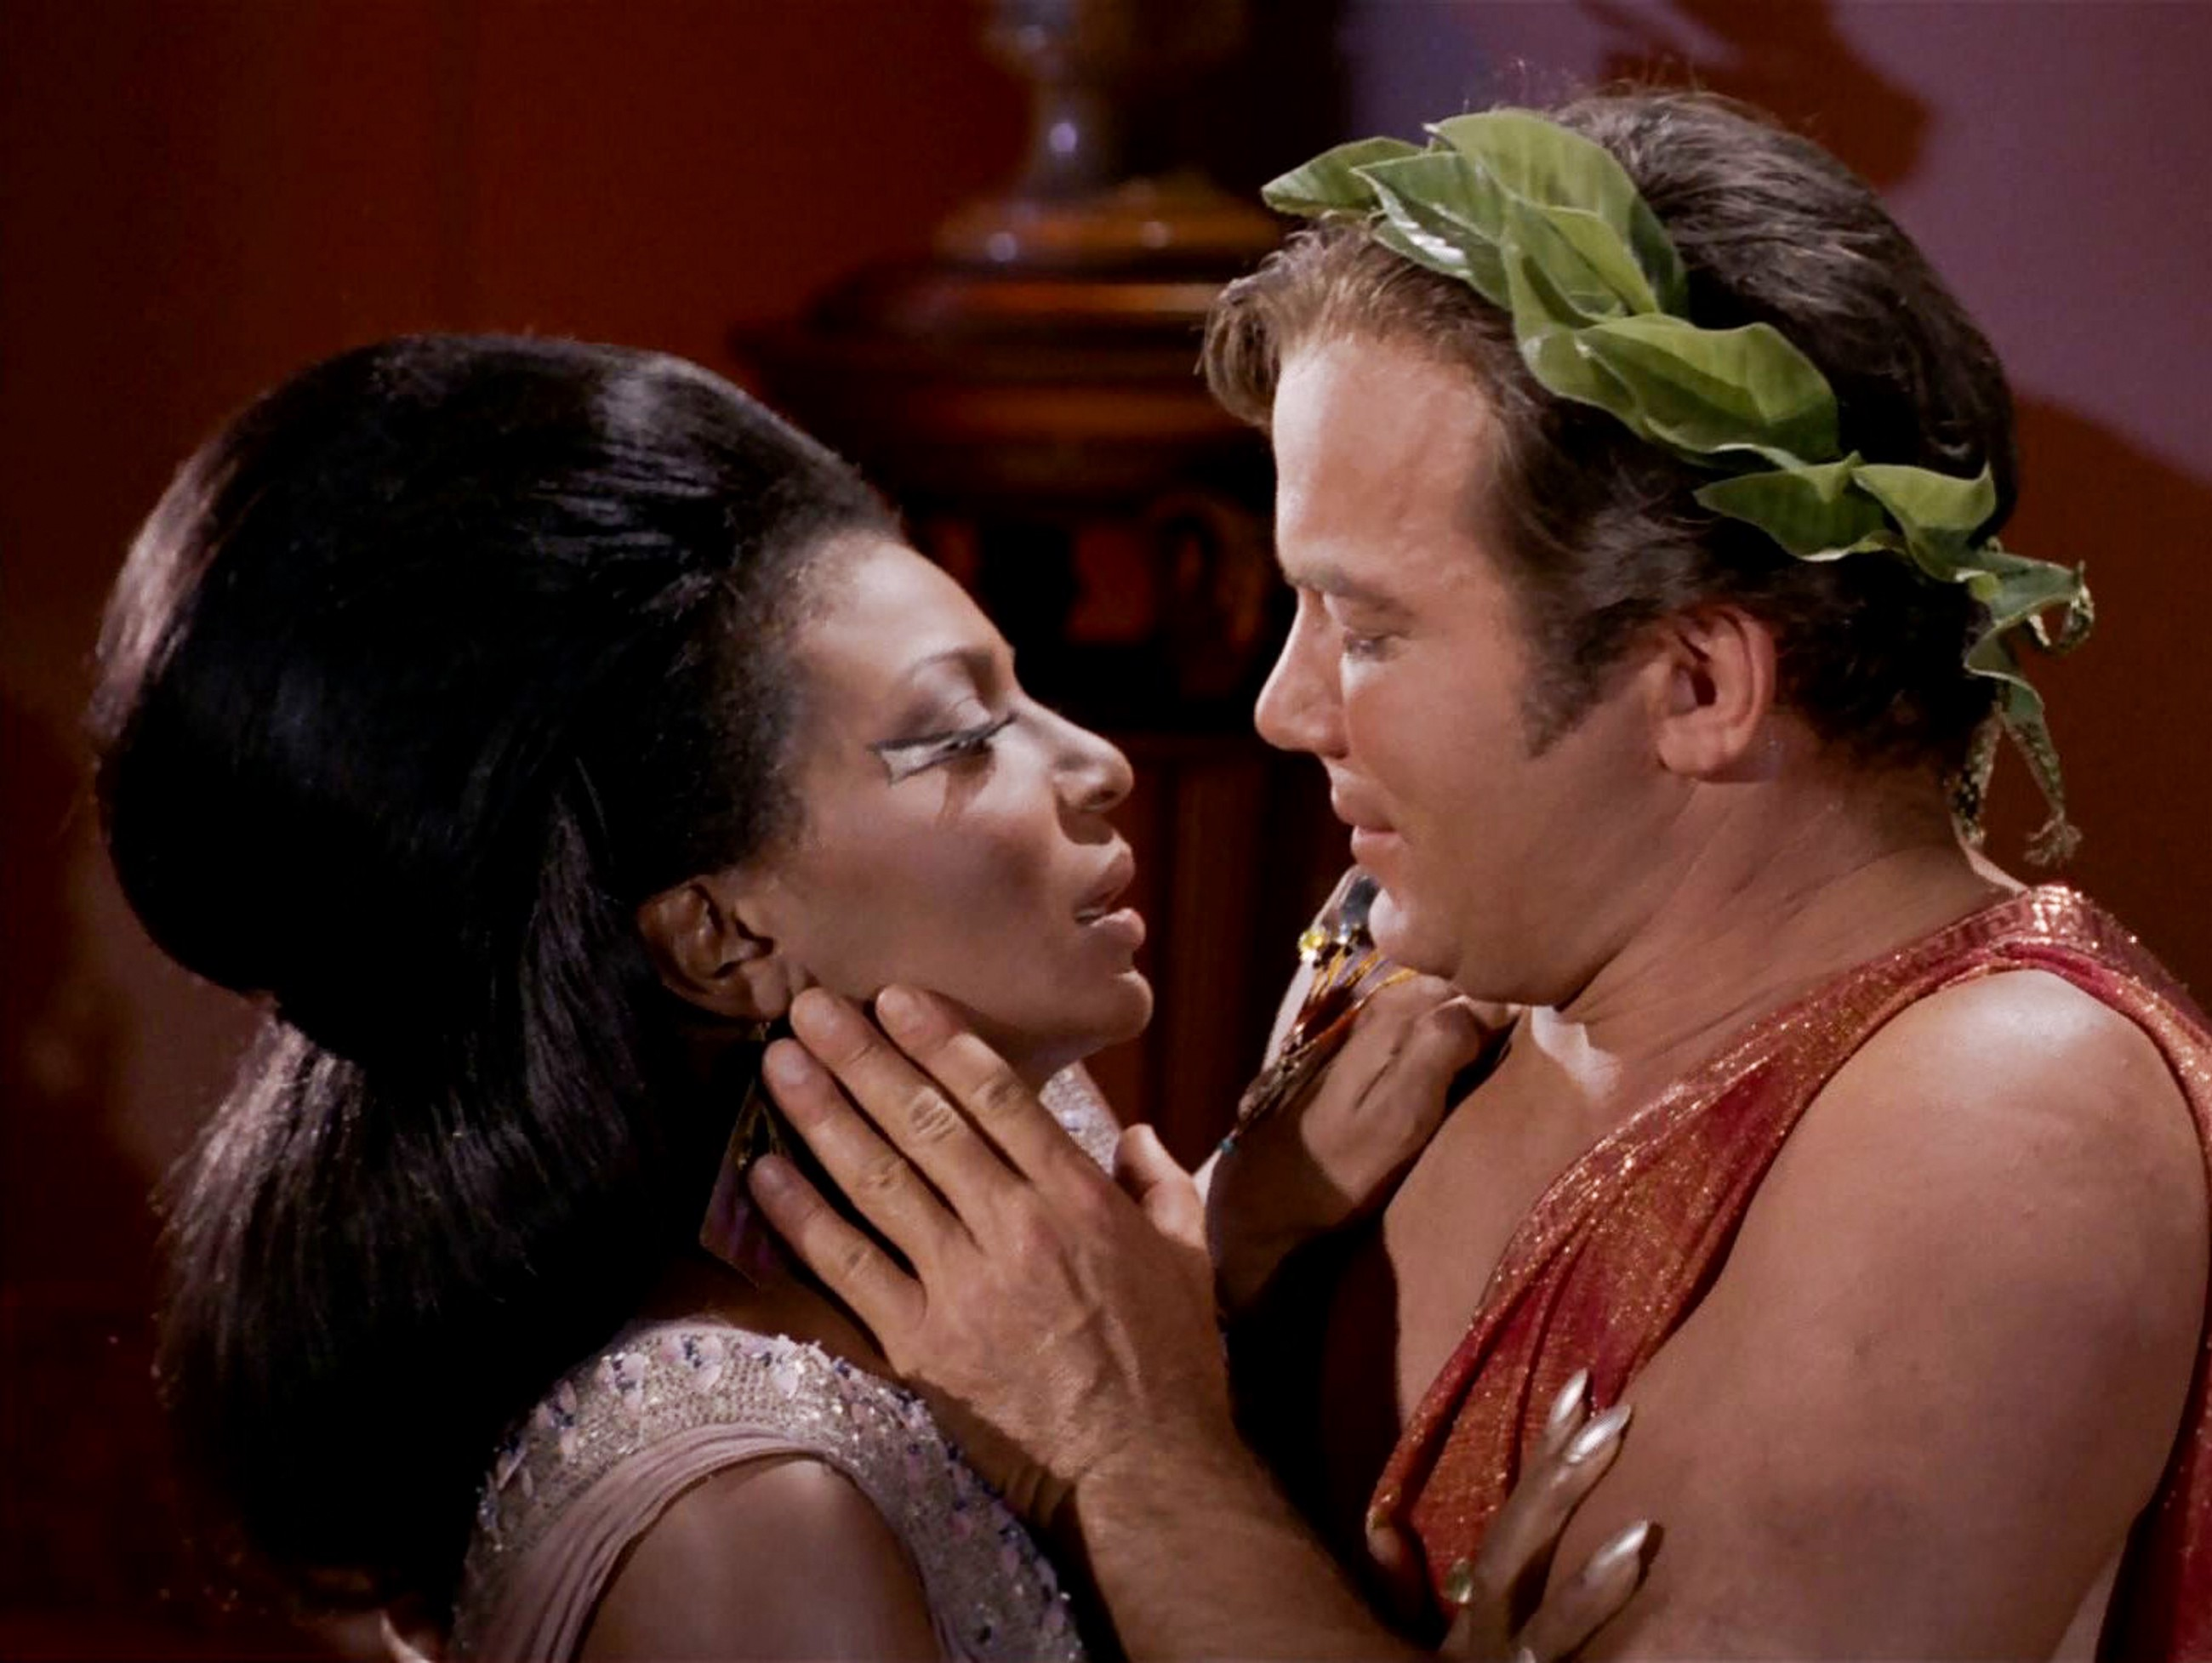 Star Trek's interracial kiss the Deep South almost never saw